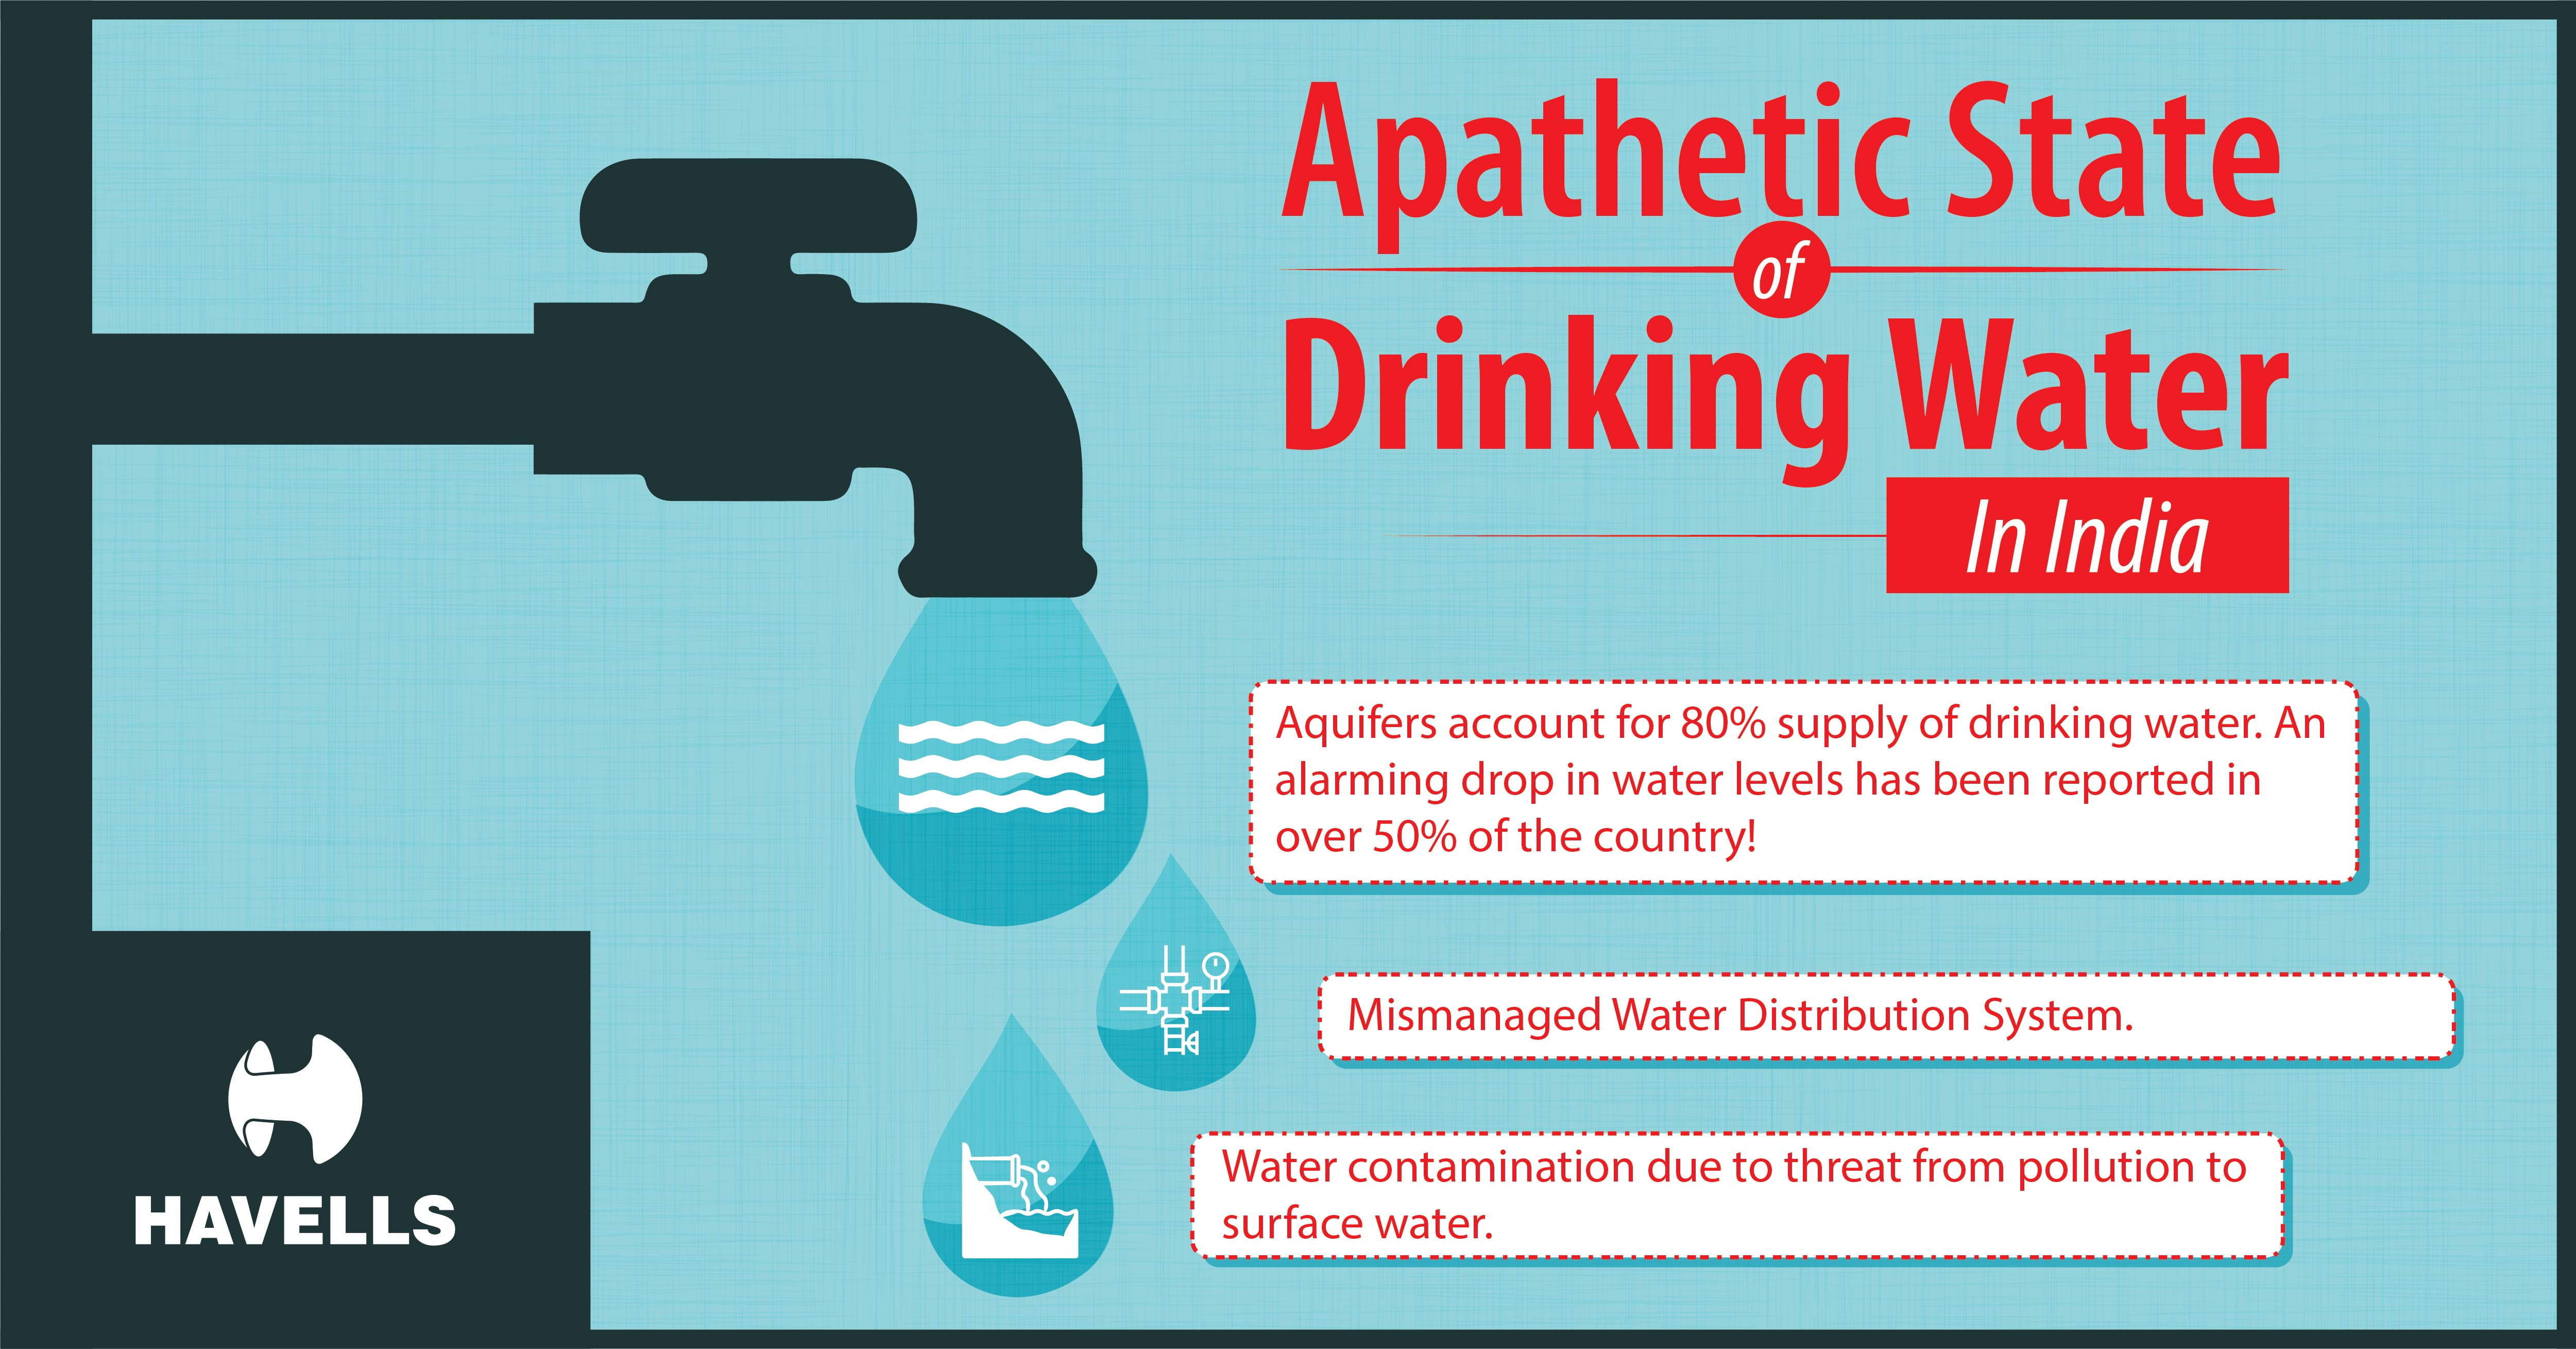 Apathetic State of Drinking Water in India